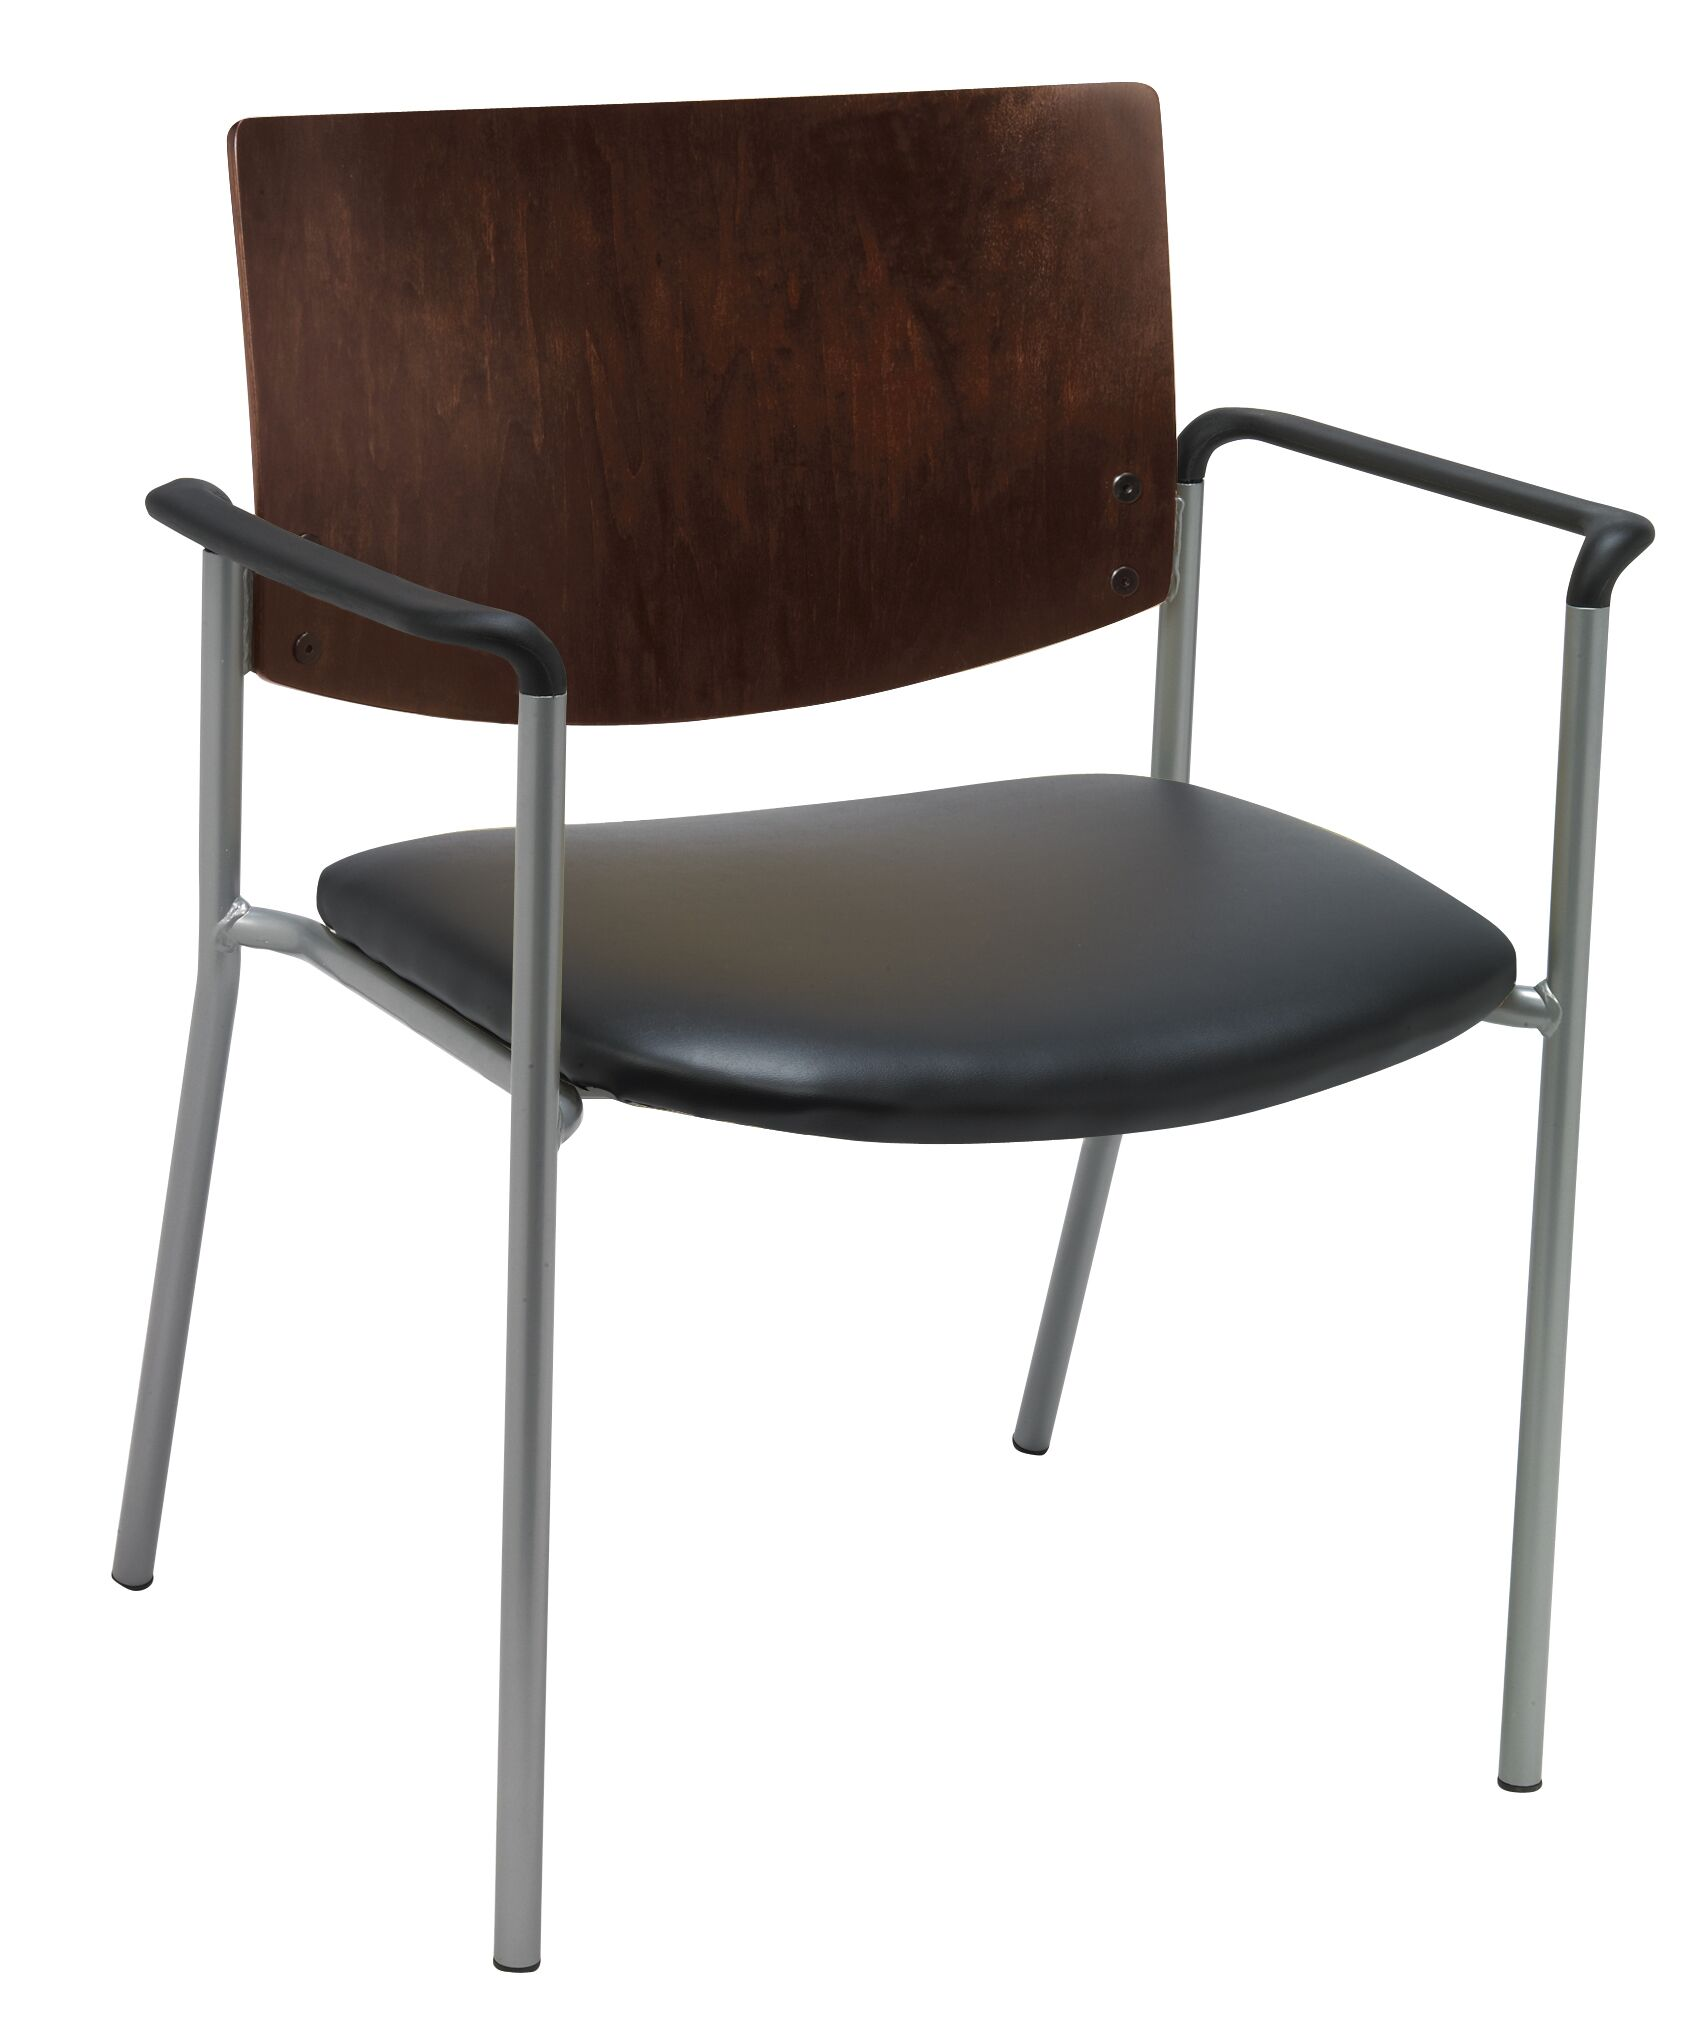 Evolve Big and Tall Guest Chair Frame Finish: Chocolate, Seat Finish: Black  Vinyl